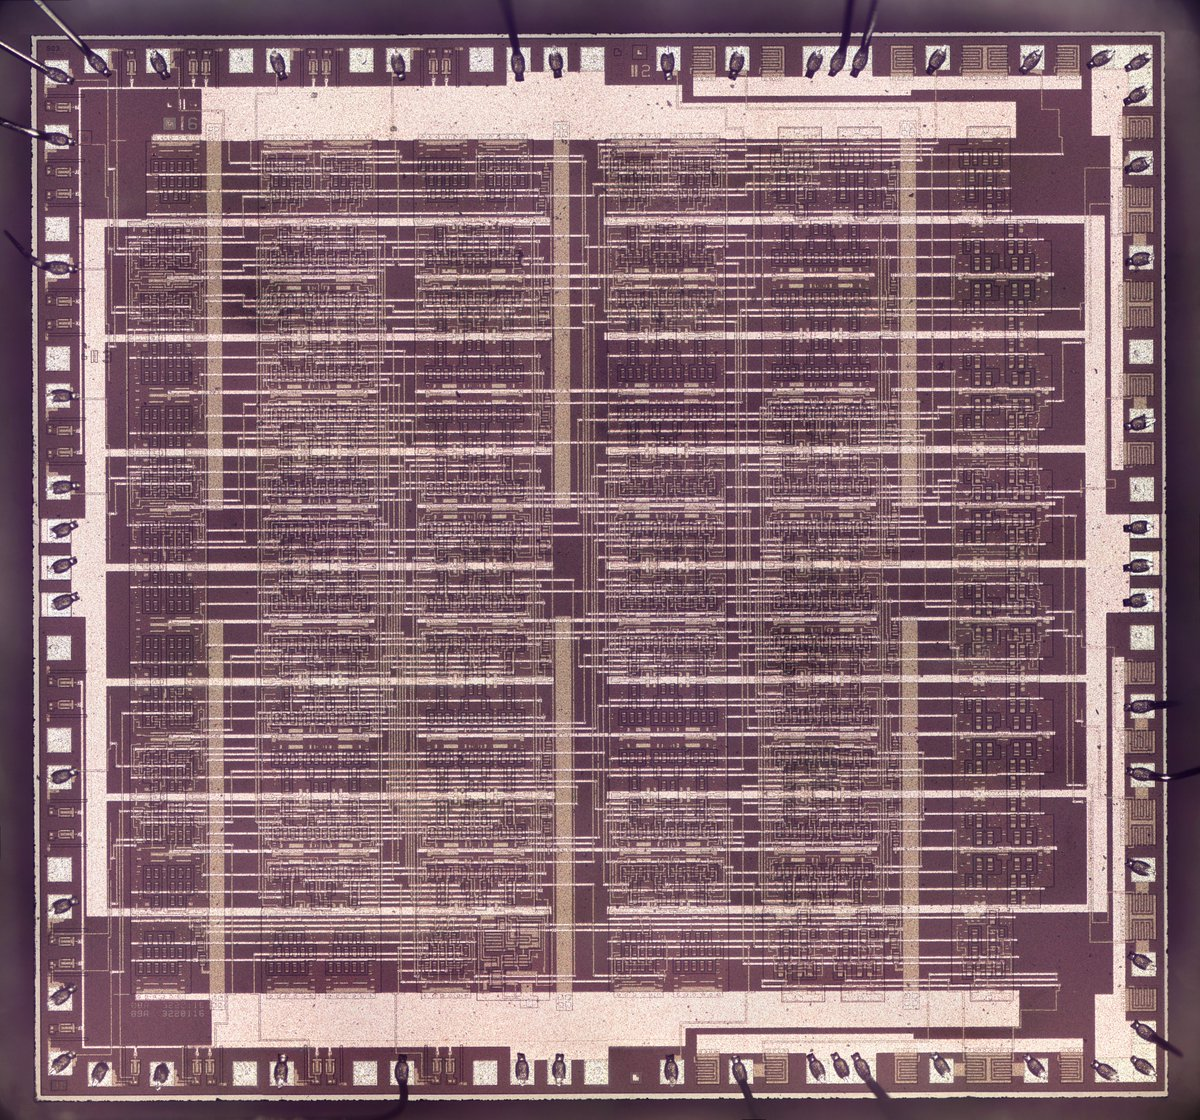 Die photo of the chip. The chip has a mostly-regular pattern of horizontal and vertical metal traces. The silicon appears purple in this photo. Bond wires are connected to pads around the edge of the chip.